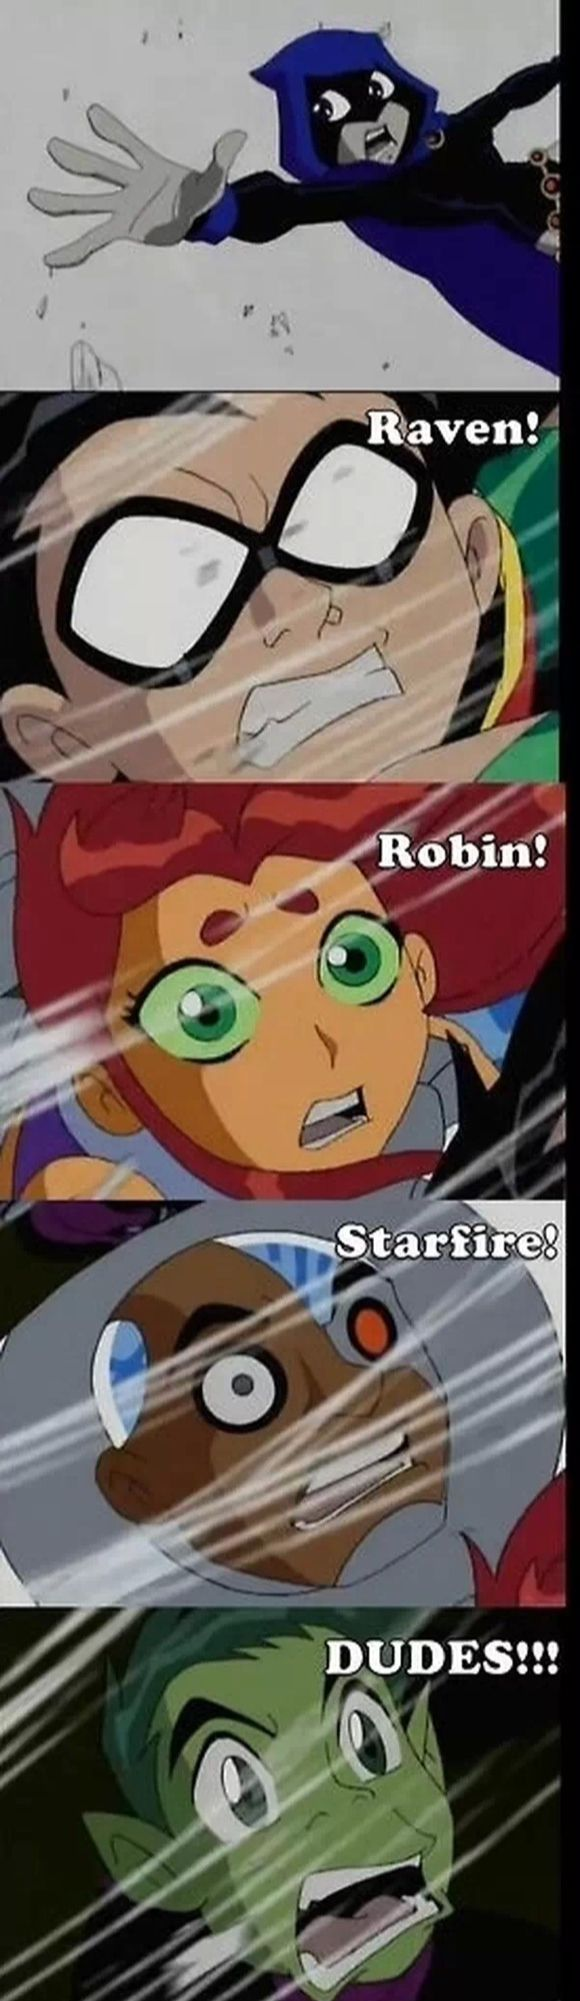 There we go Beast Boy. In the 4 part episode season finally, The End, Robin WAS the person there the whole time for Raven.